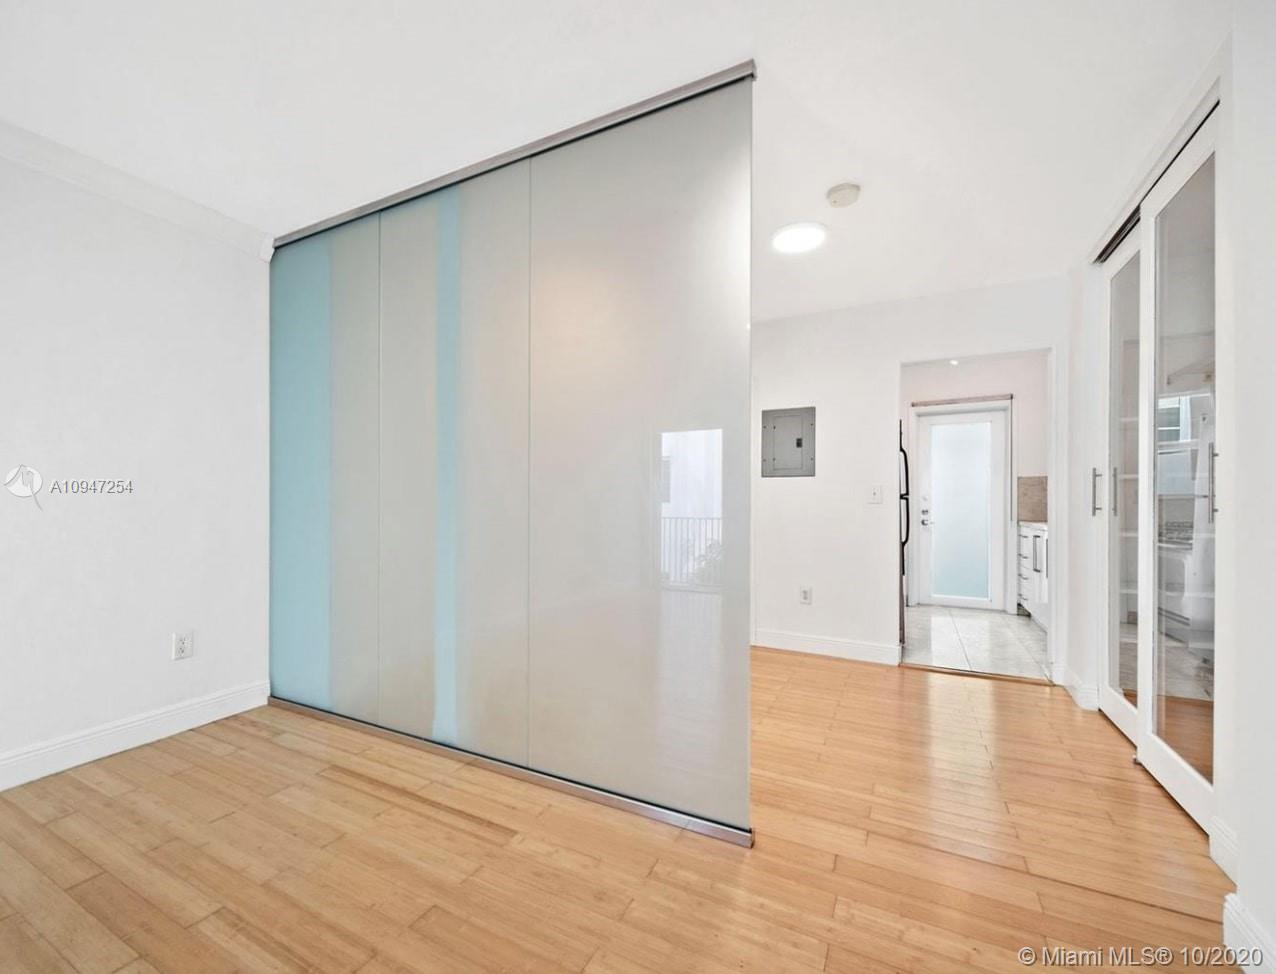 Beautifully remodeled studio on Meridian Avenue, complete with high impact windows & doors, bamboo f